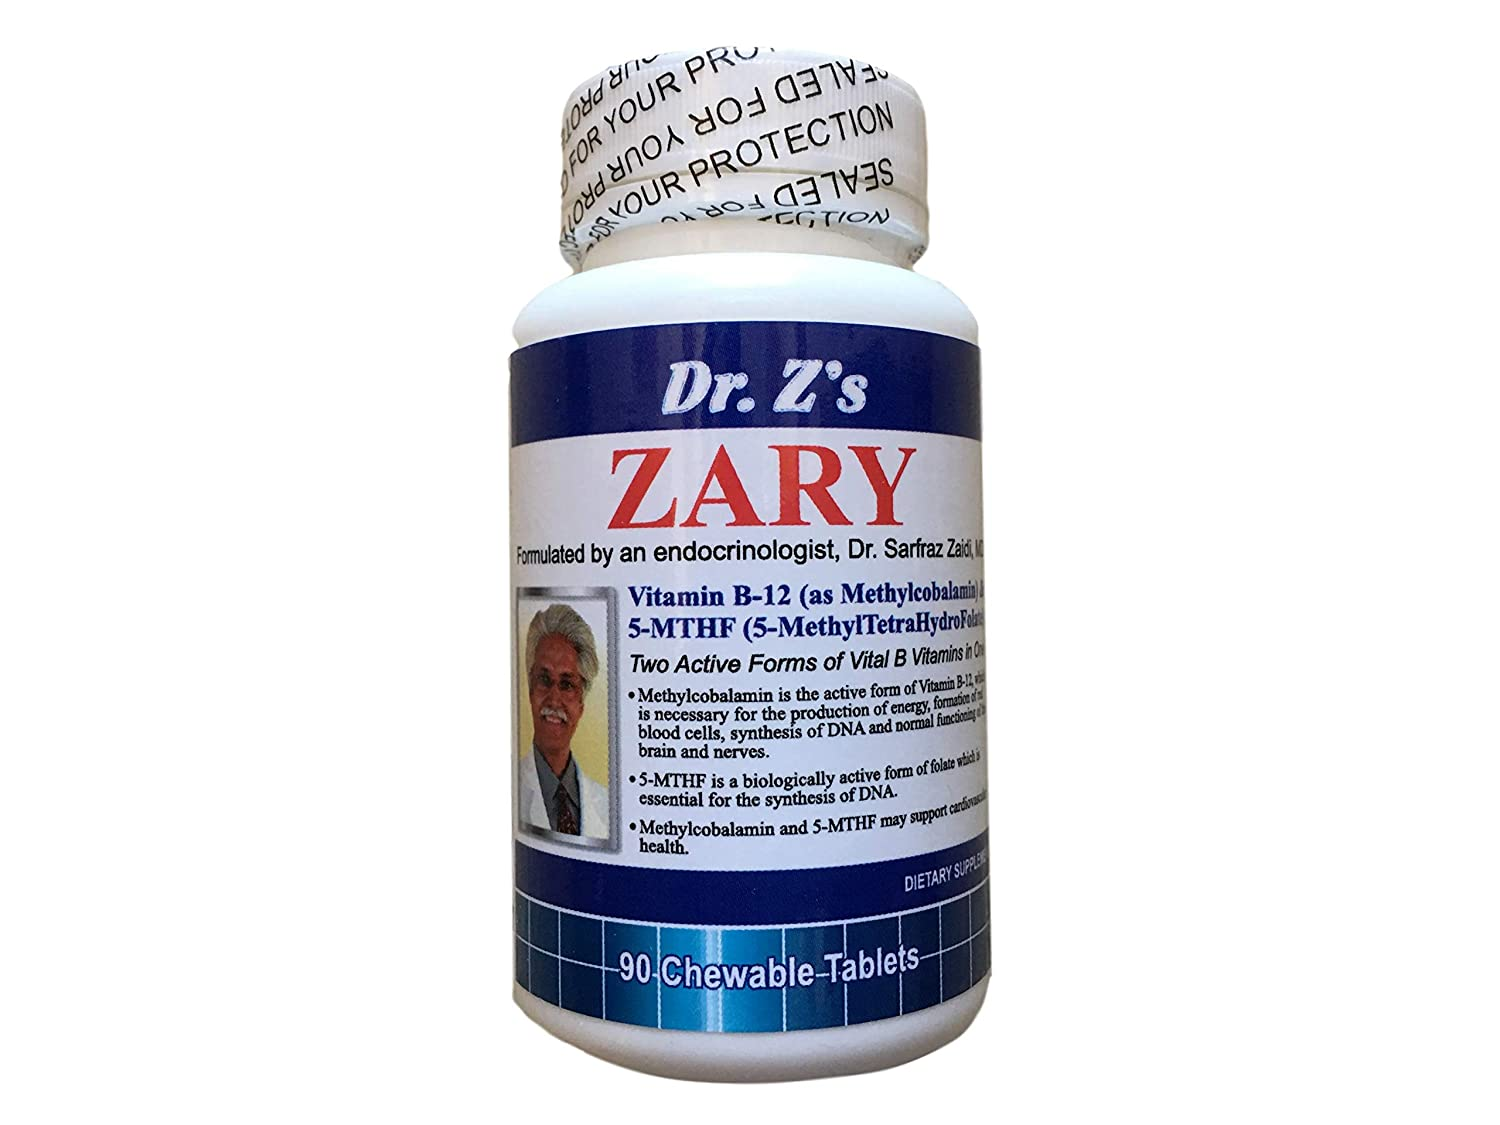 Dr. Z s – ZARY – Methylcobalamin, 5 MTHF Combination – Two Active Forms of Vital B Vitamins in One – 90 Count